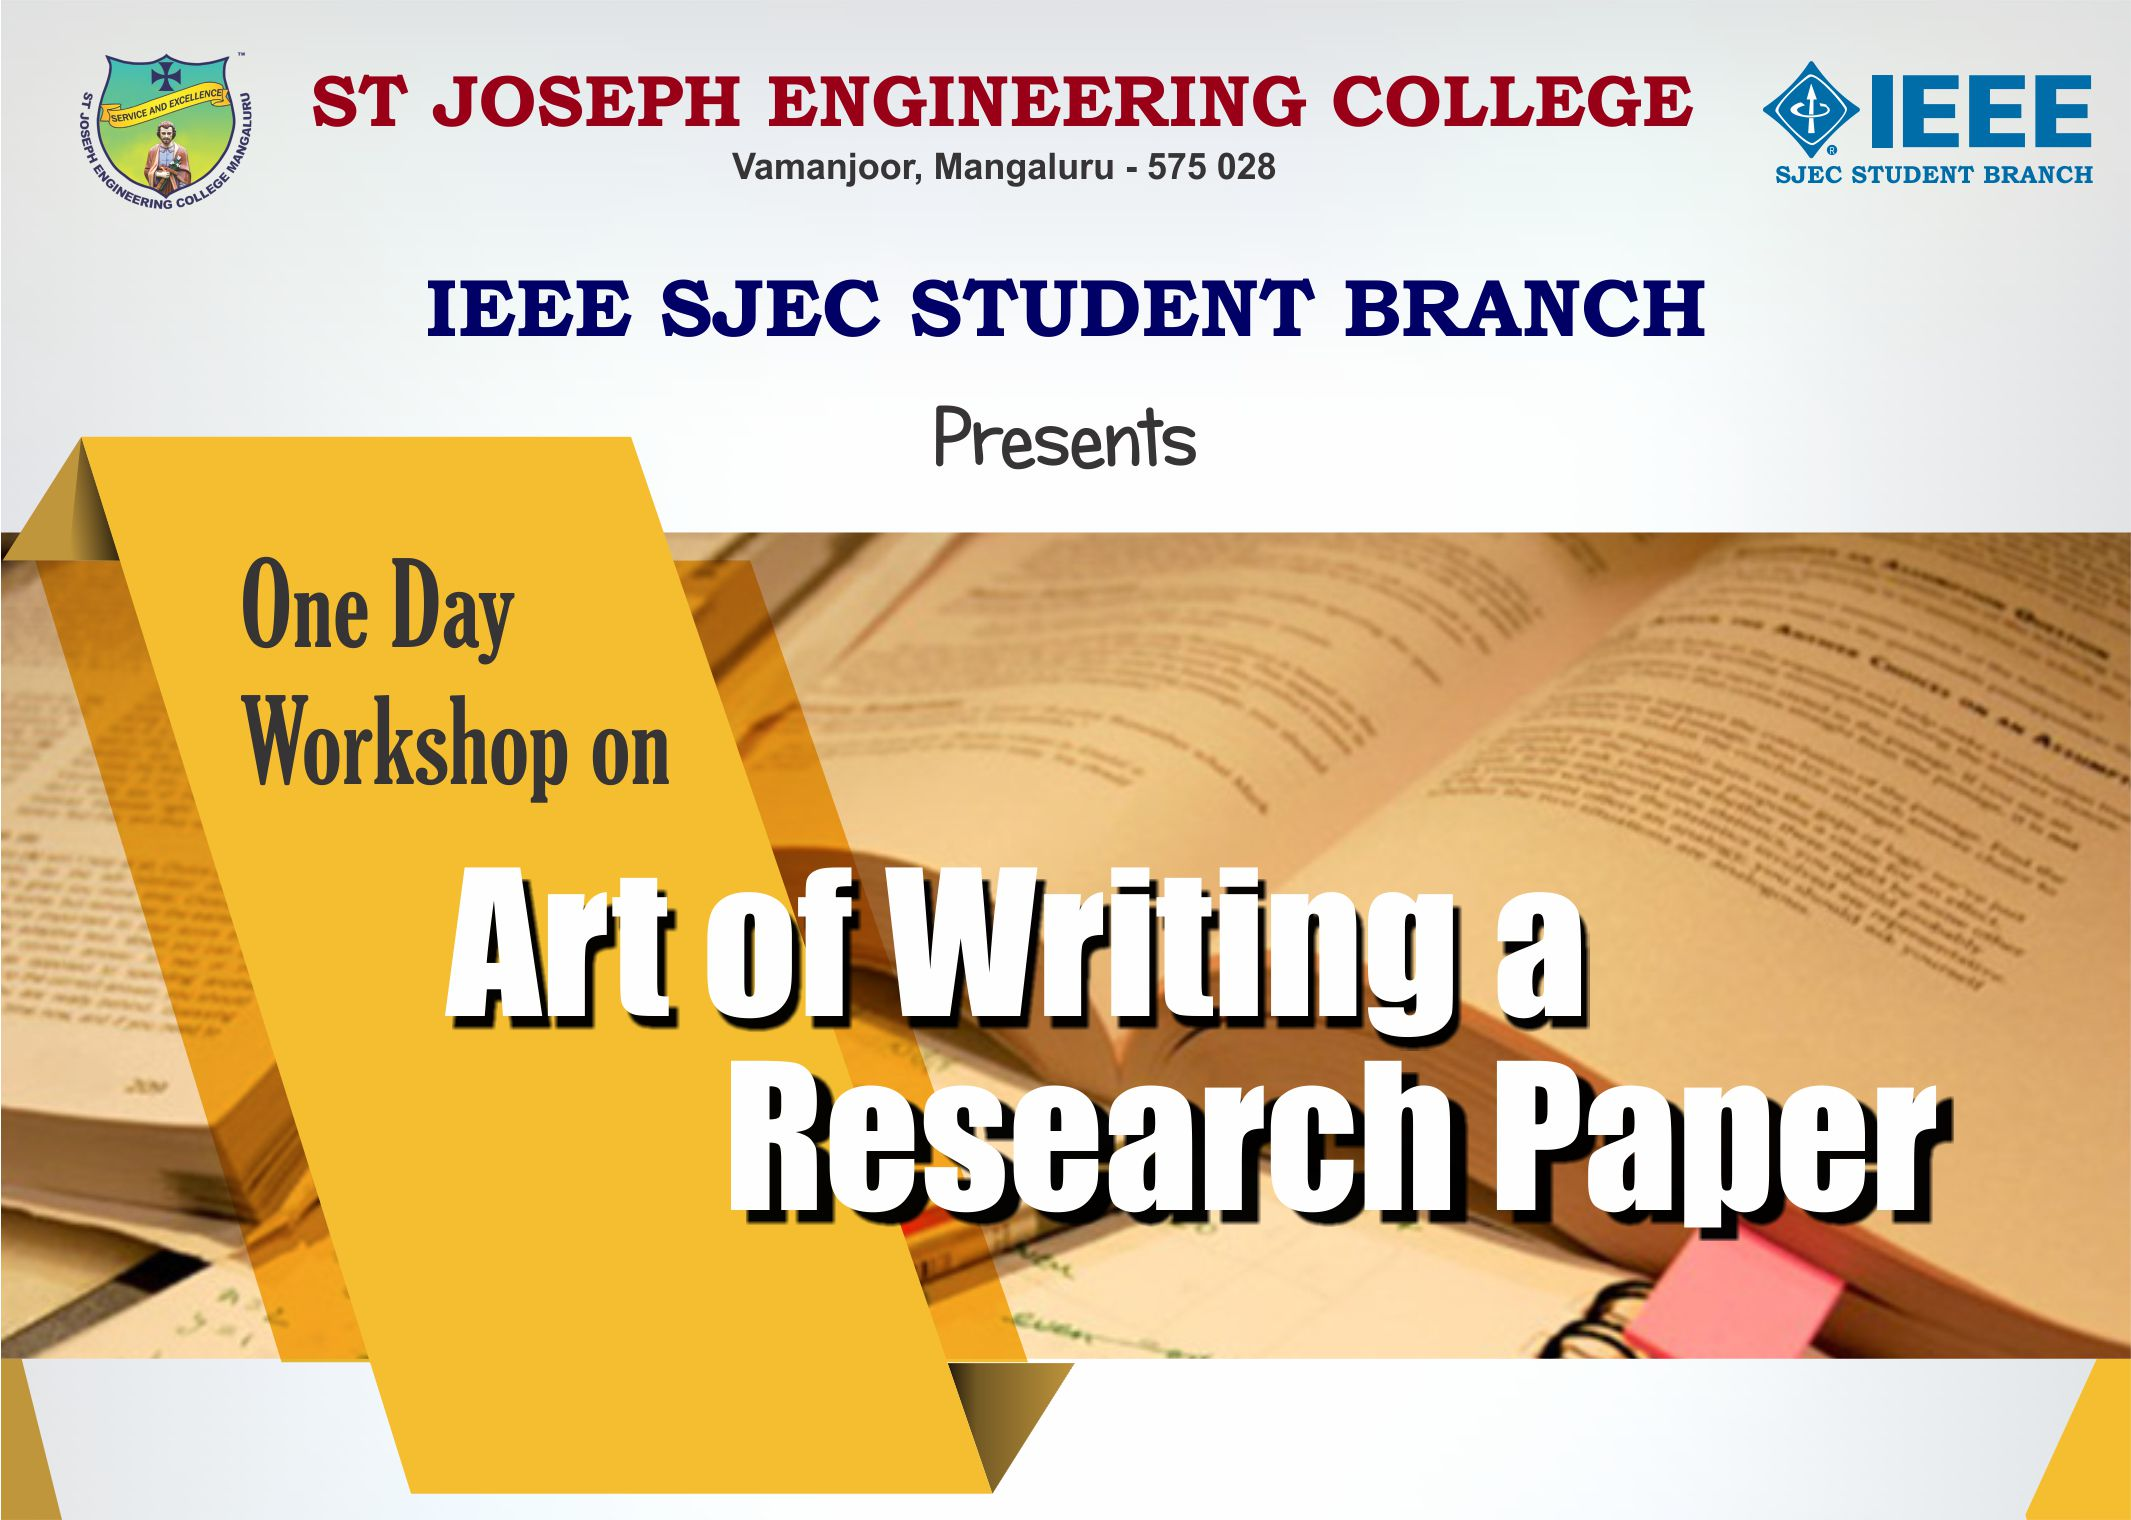 005 Workshop Banner Researchs Writing Fascinating Research Papers Best Paper Services In India Pakistan Format Example Apa Full